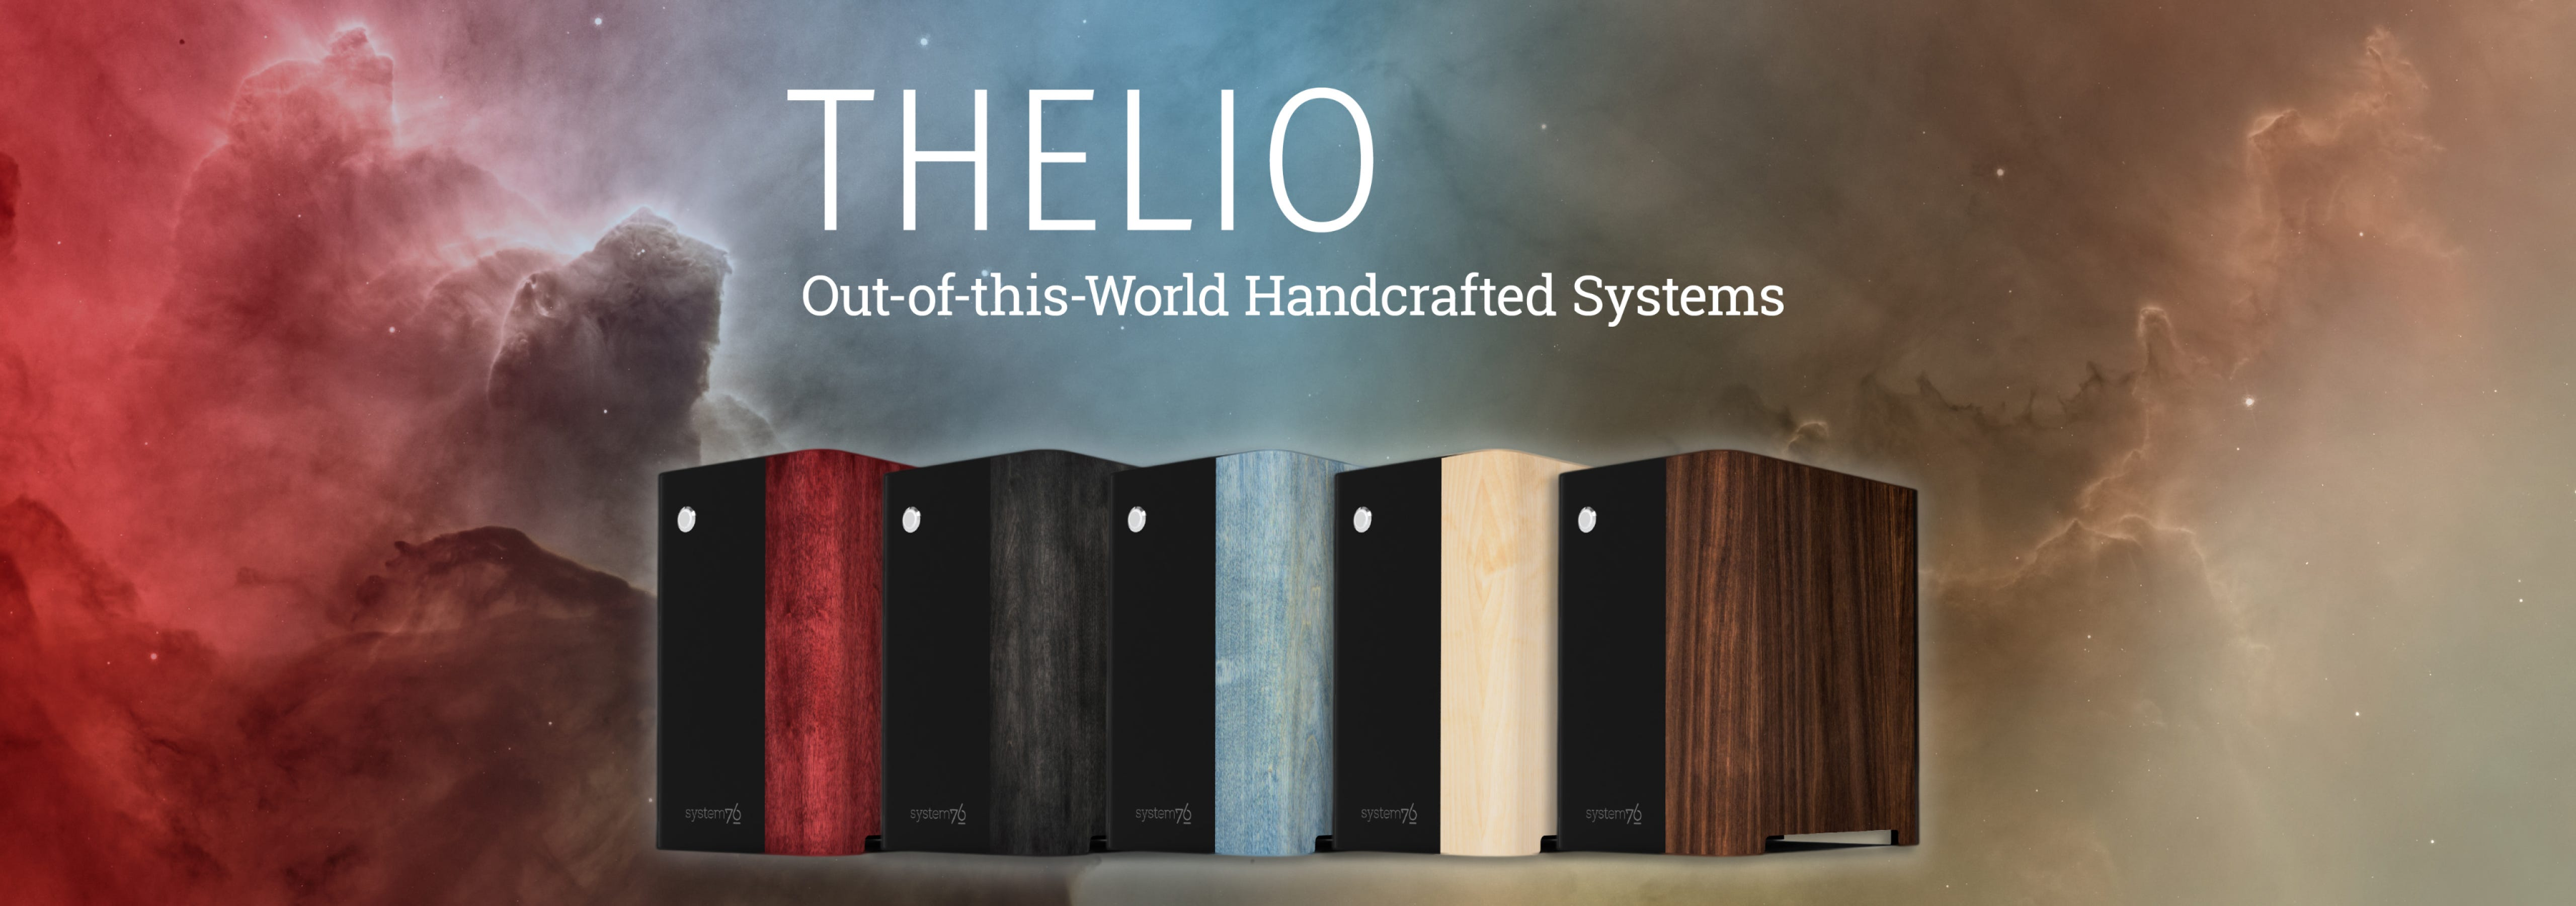 Out-of-this-world handcrafted systems